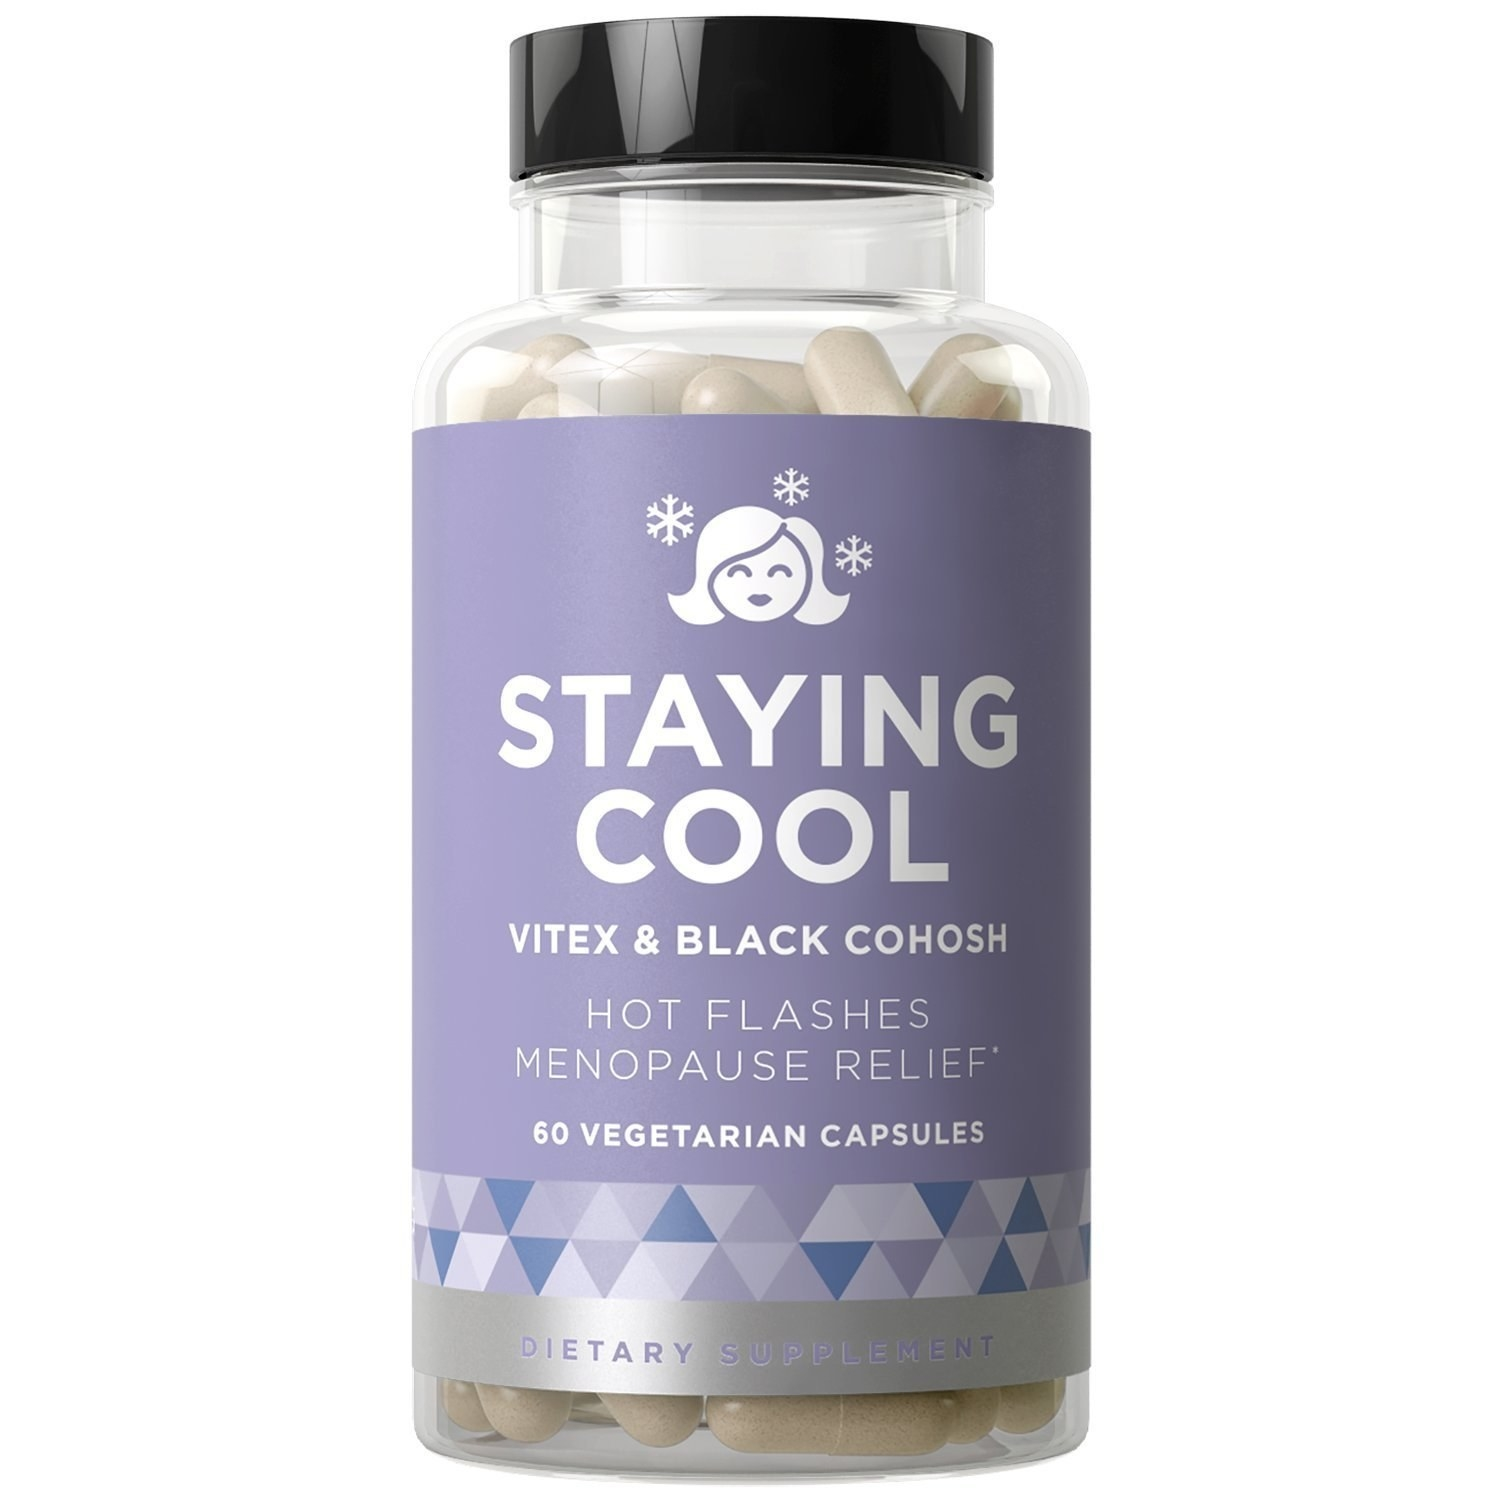 A bottle of Staying Cool Hot Flashes & Menopause Natural Relief supplements.